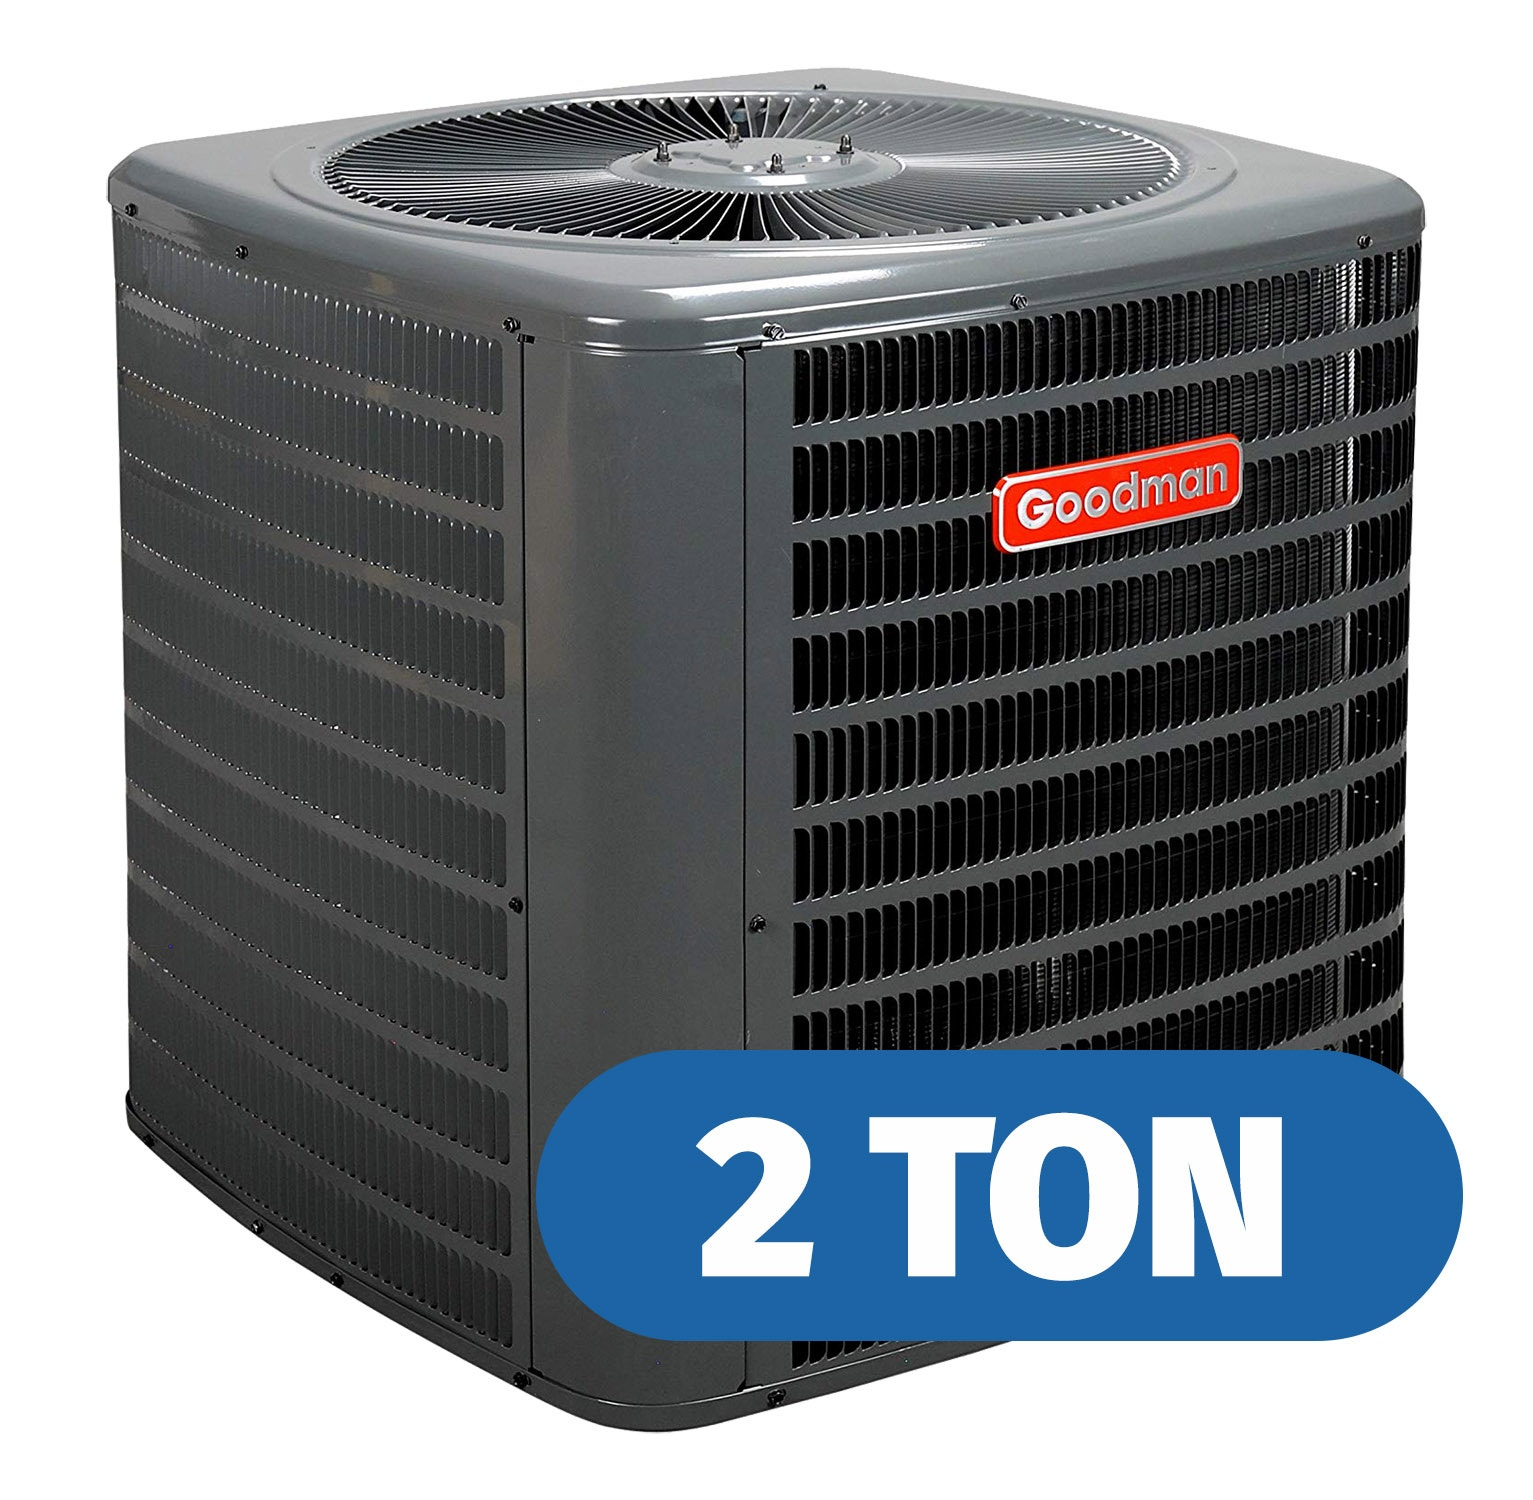 2 Ton Air Conditioners